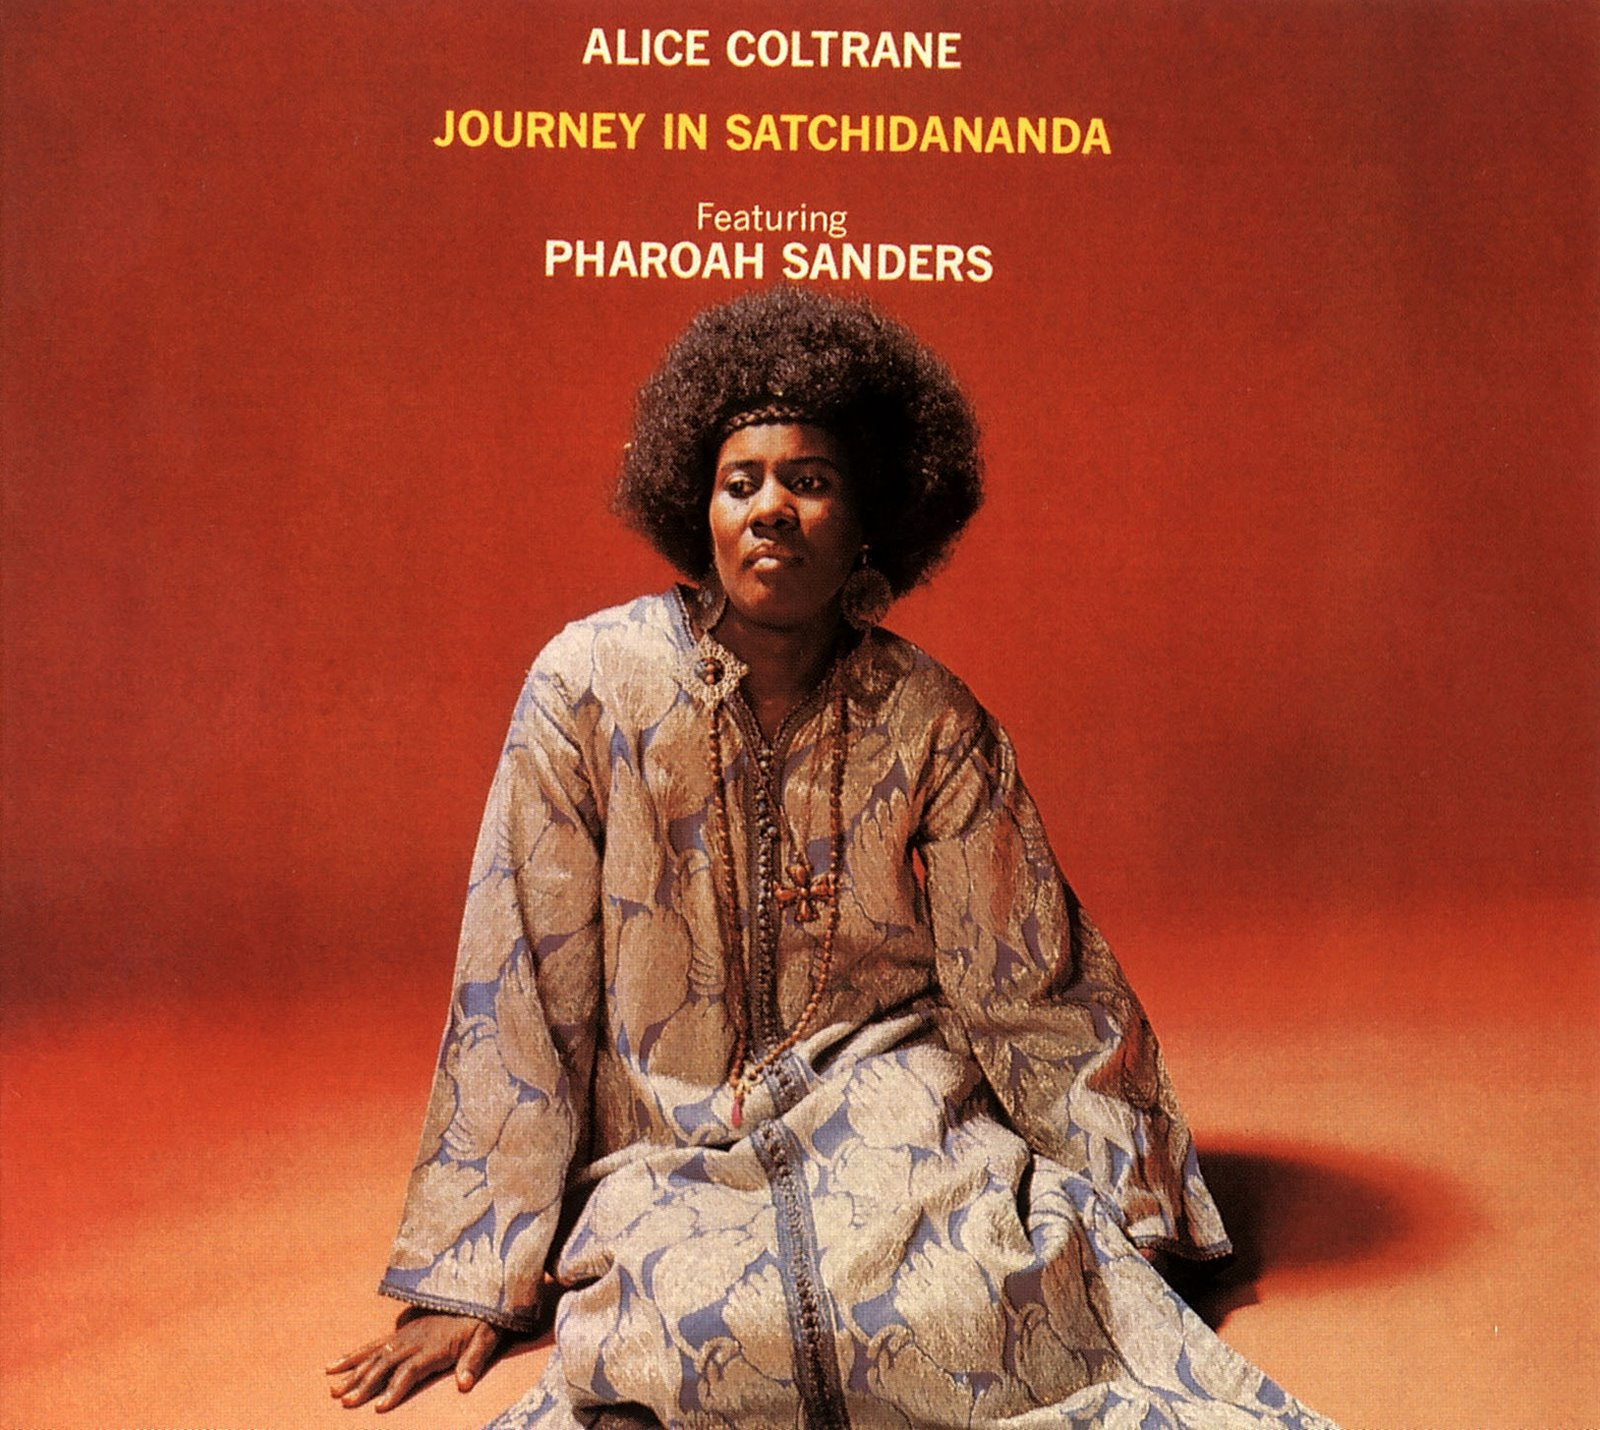 Soundtrack For The Deaf Alice Coltrane Journey In